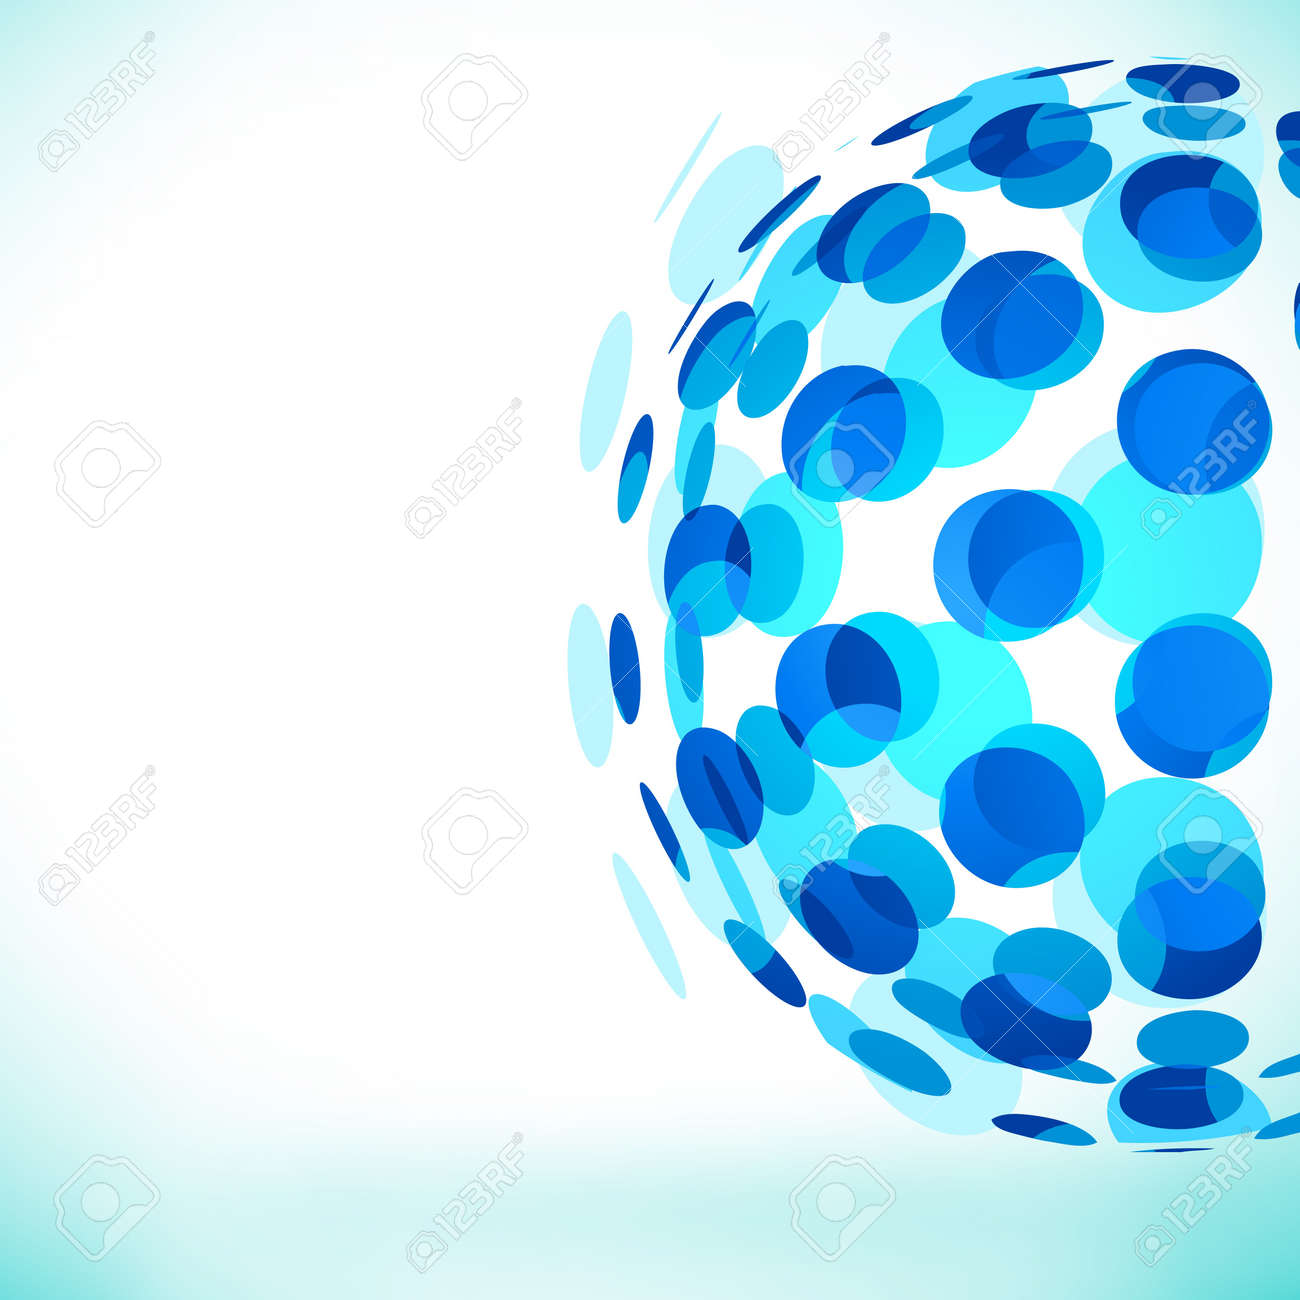 Abstract Bubble Sphere background. Stock Vector - 7883424